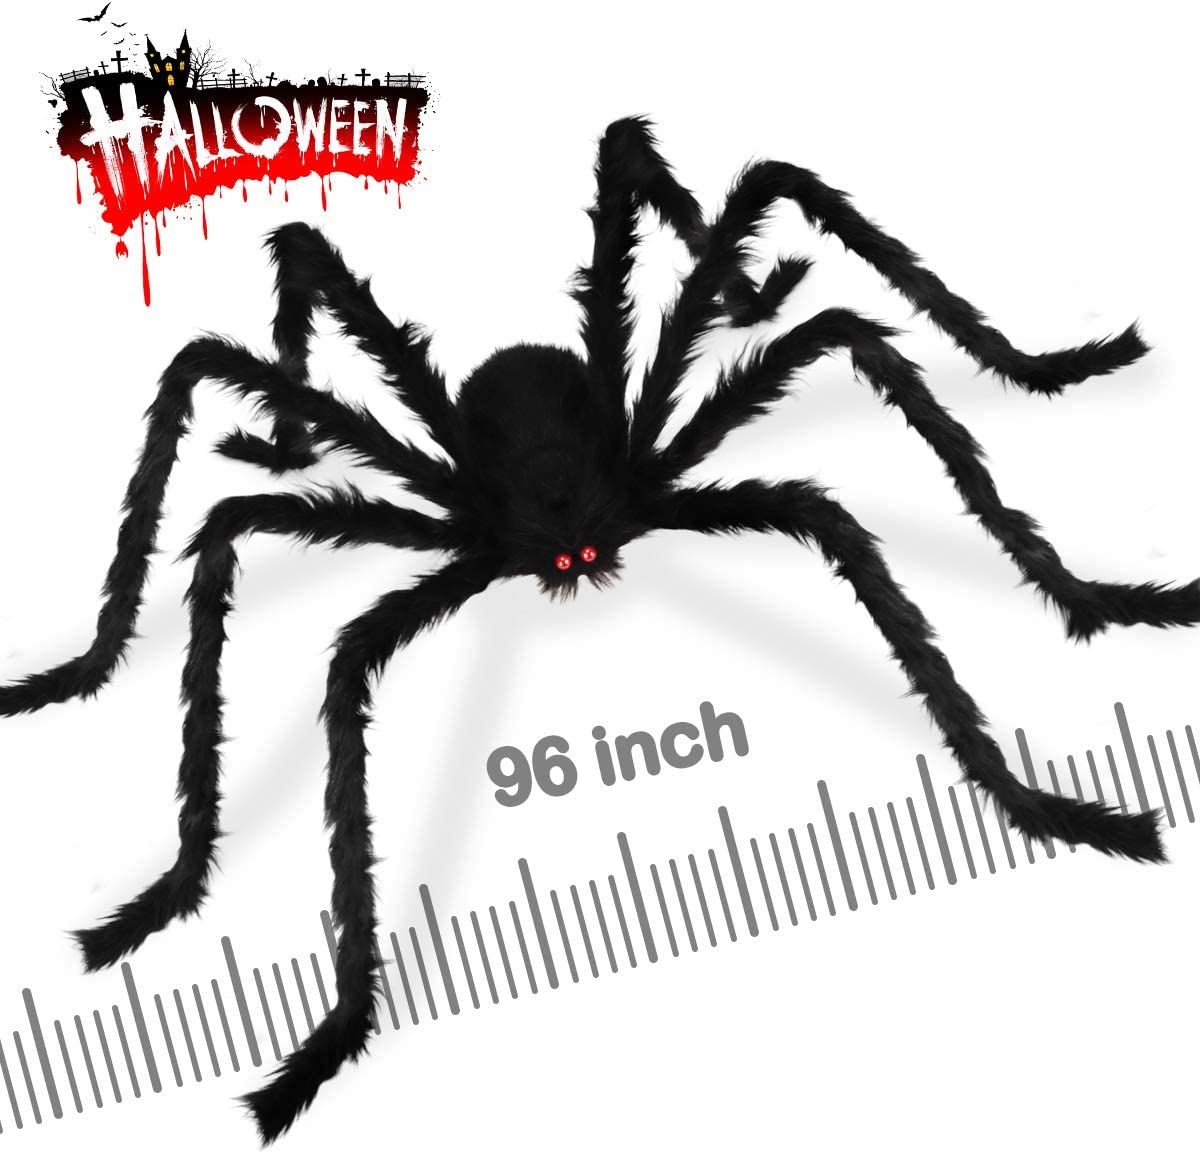 Dreampark 8.0 Ft Halloween Giant Spider, Fake Large Hairy Spider Decorations, Scary Virtual Realistic Spider Props for Indoor Outdoor Creepy Decor Black